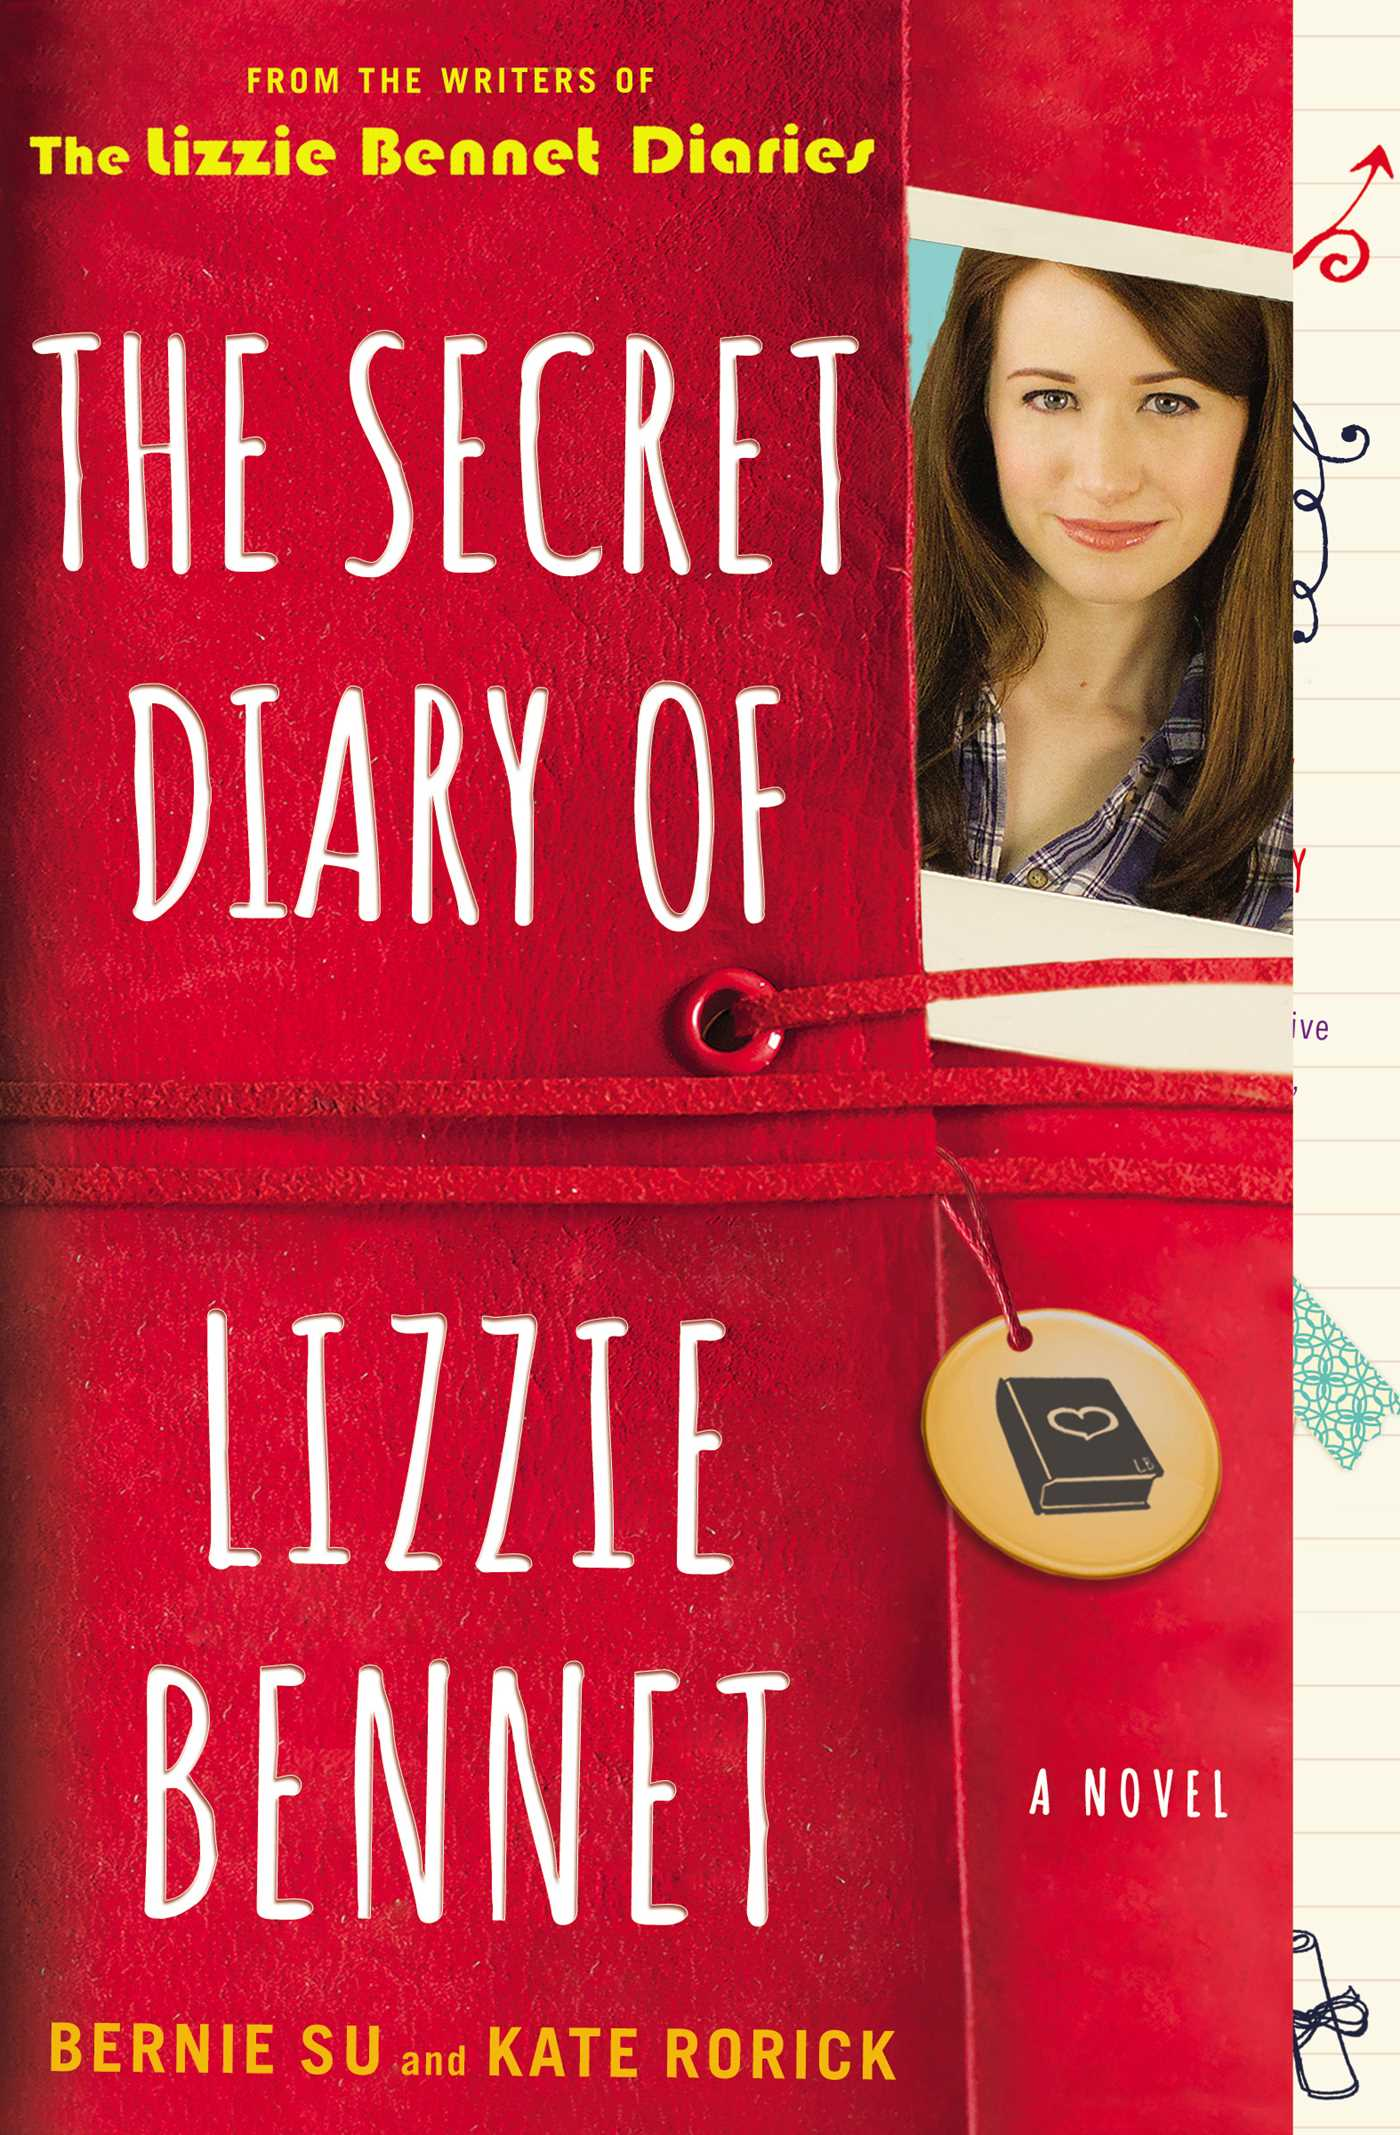 Secret-diary-of-lizzie-bennet-9781476763163_hr